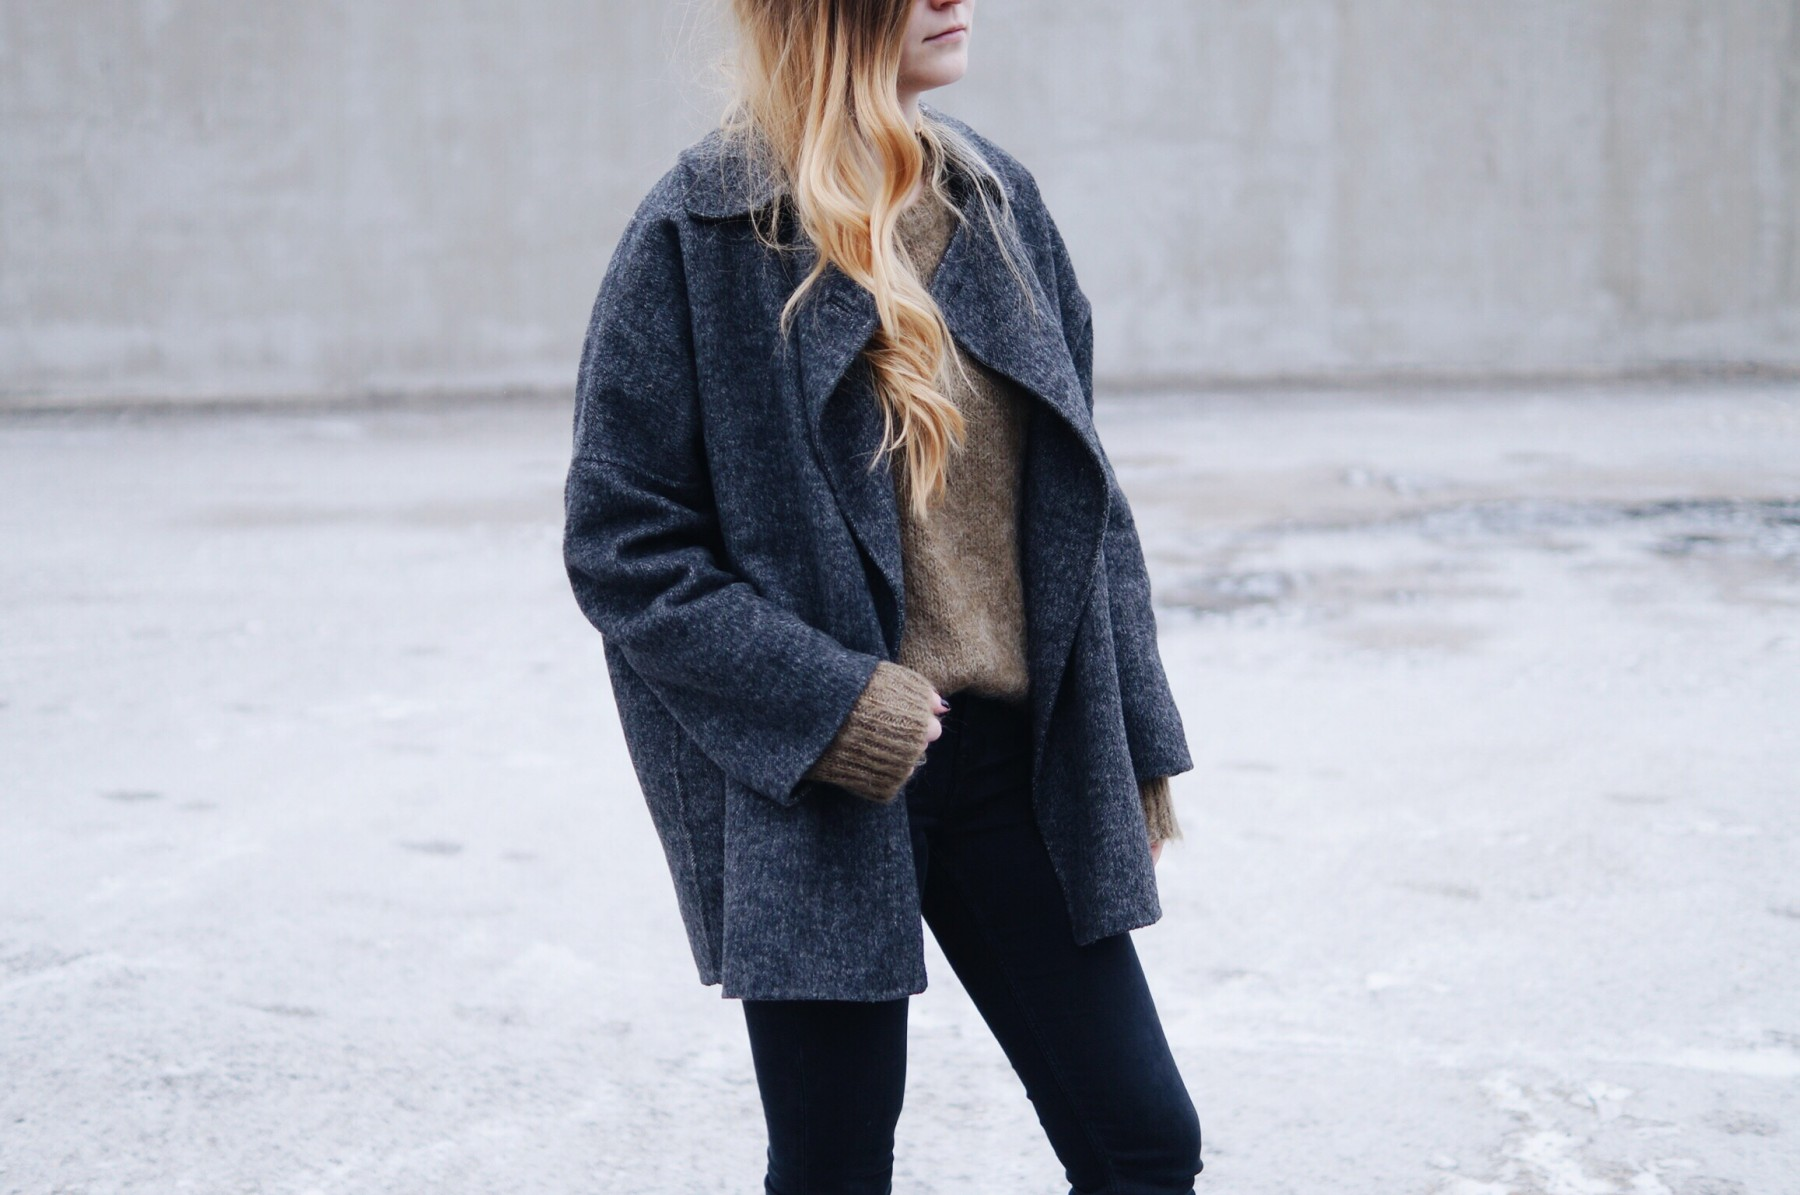 mohair_sweater_wool_coat_winter_outfit10